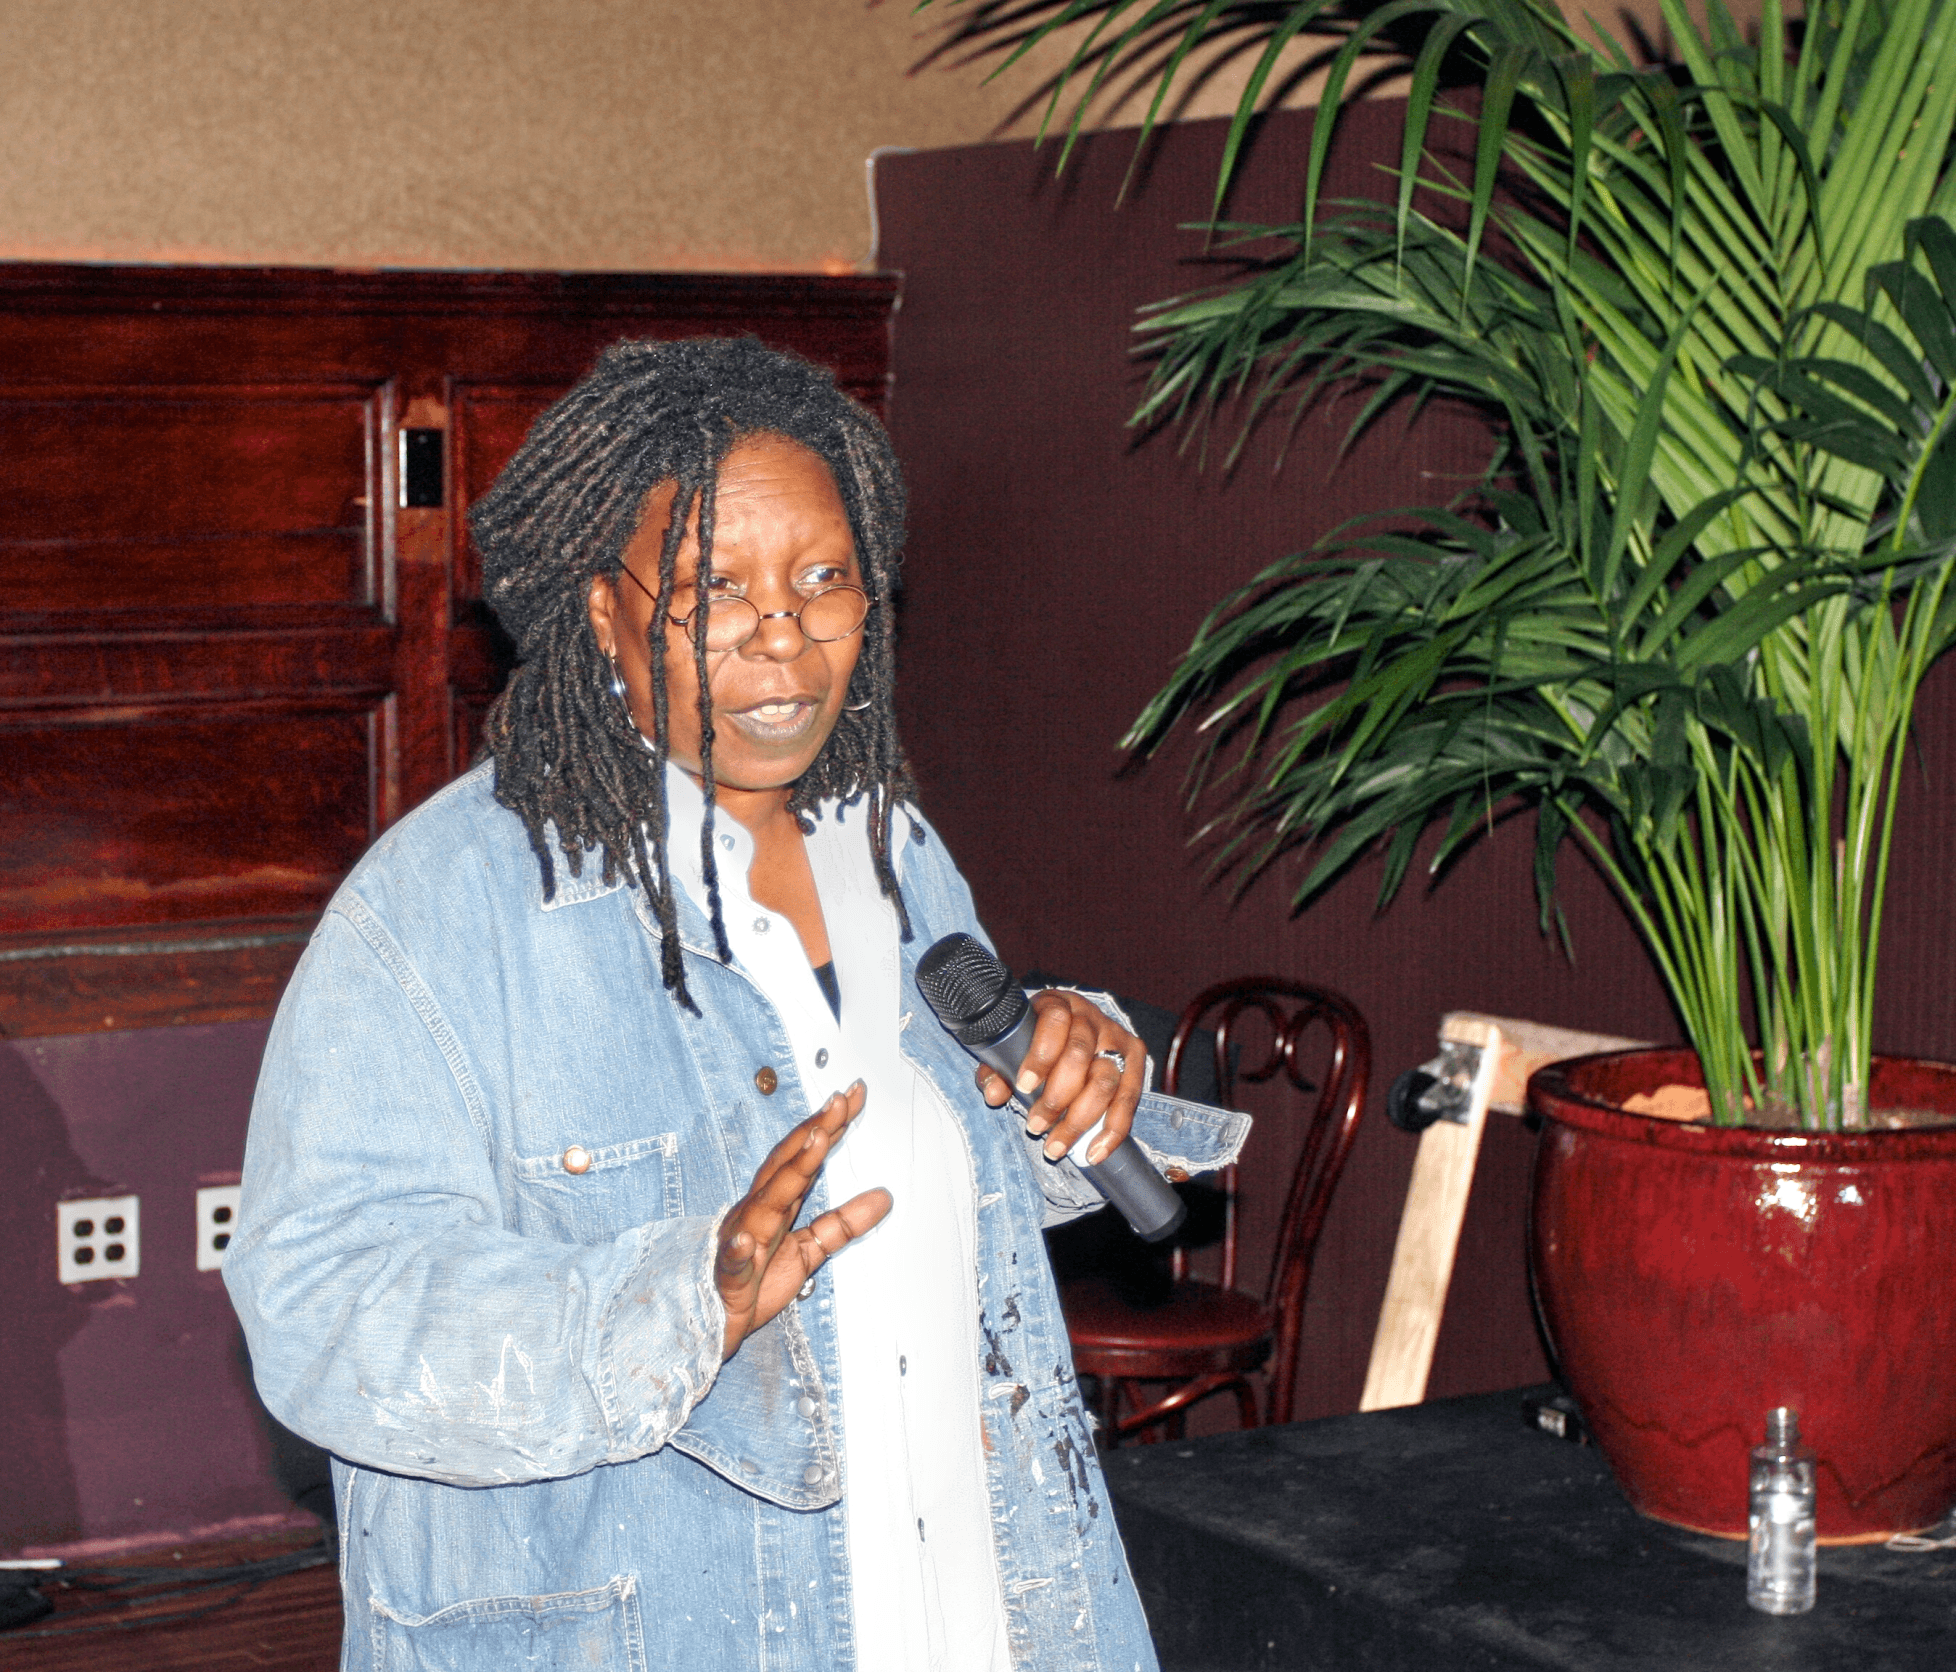 Pictures of Whoopi Goldberg, Picture #56048 - Pictures Of Celebrities